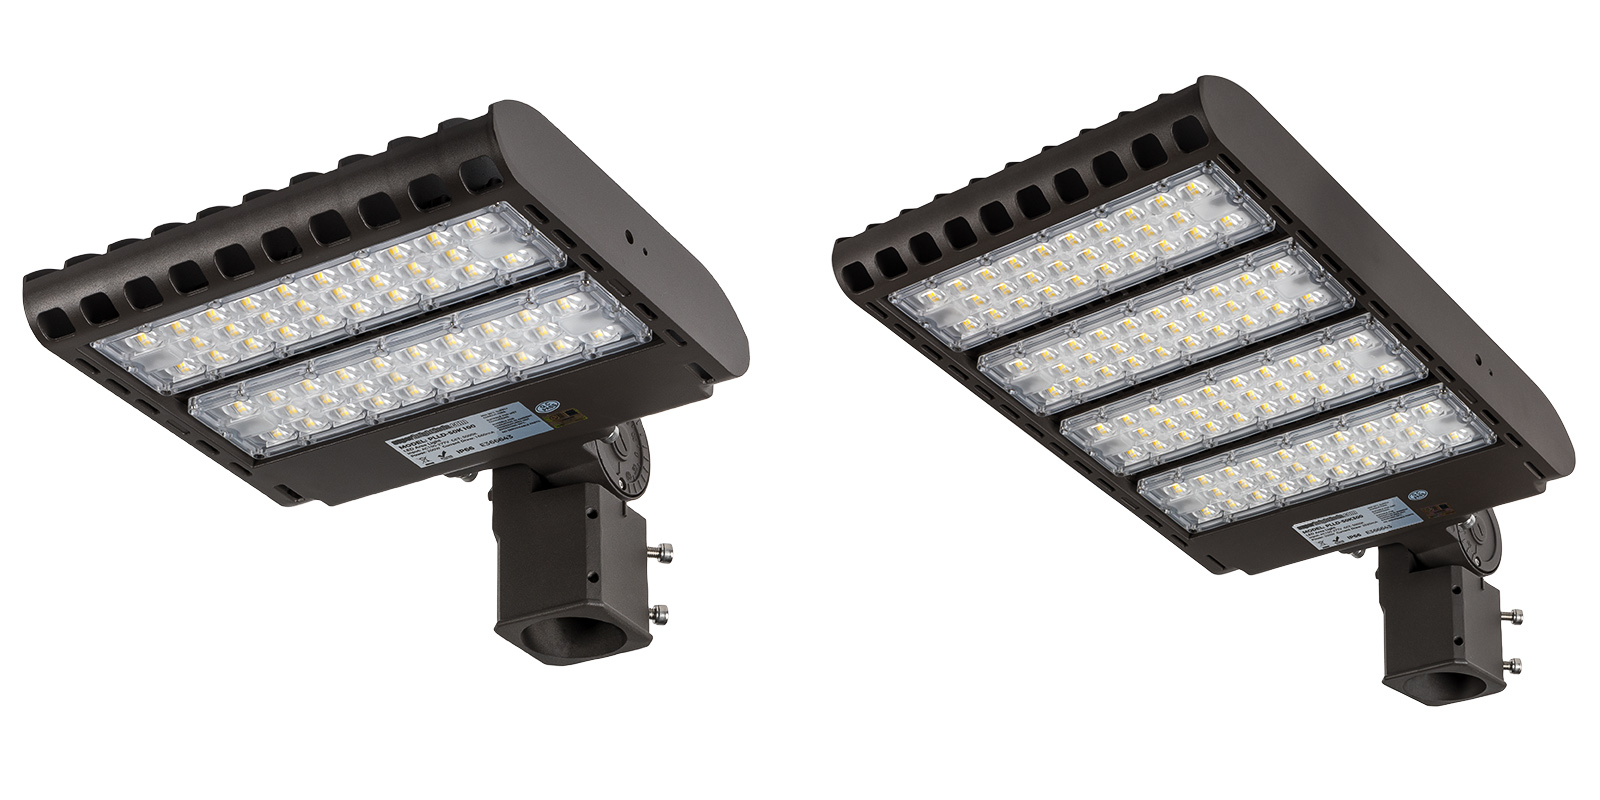 LED parking lot lights/area lights - fixture styles